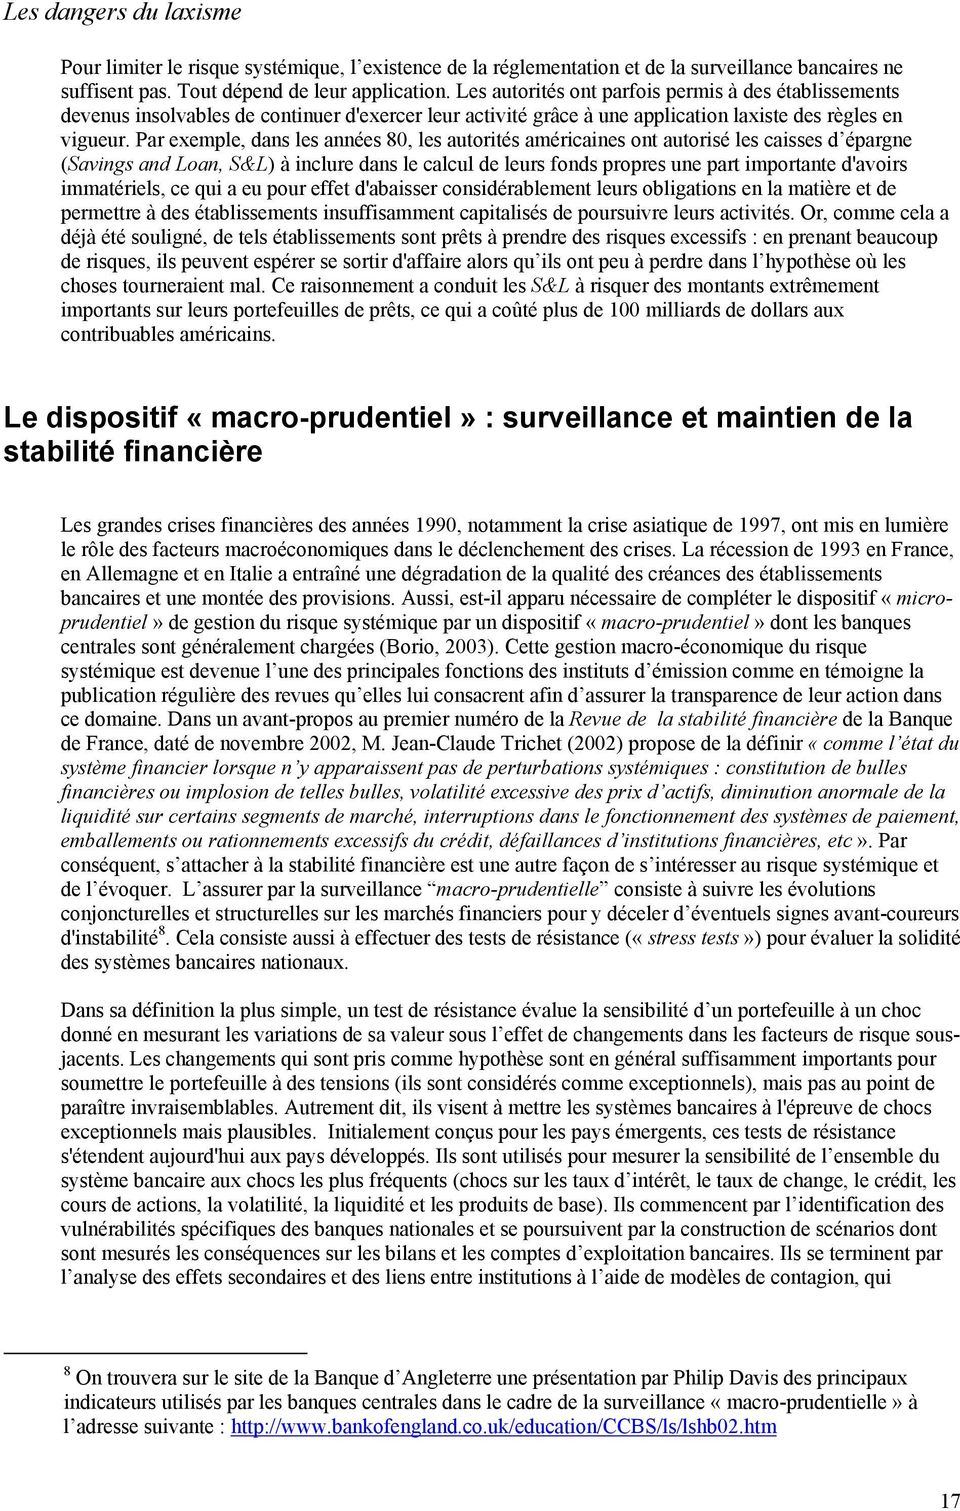 Par exemple, dans les années 80, les autorités américaines ont autorisé les caisses d épargne (Savings and Loan, S&L) à inclure dans le calcul de leurs fonds propres une part importante d'avoirs